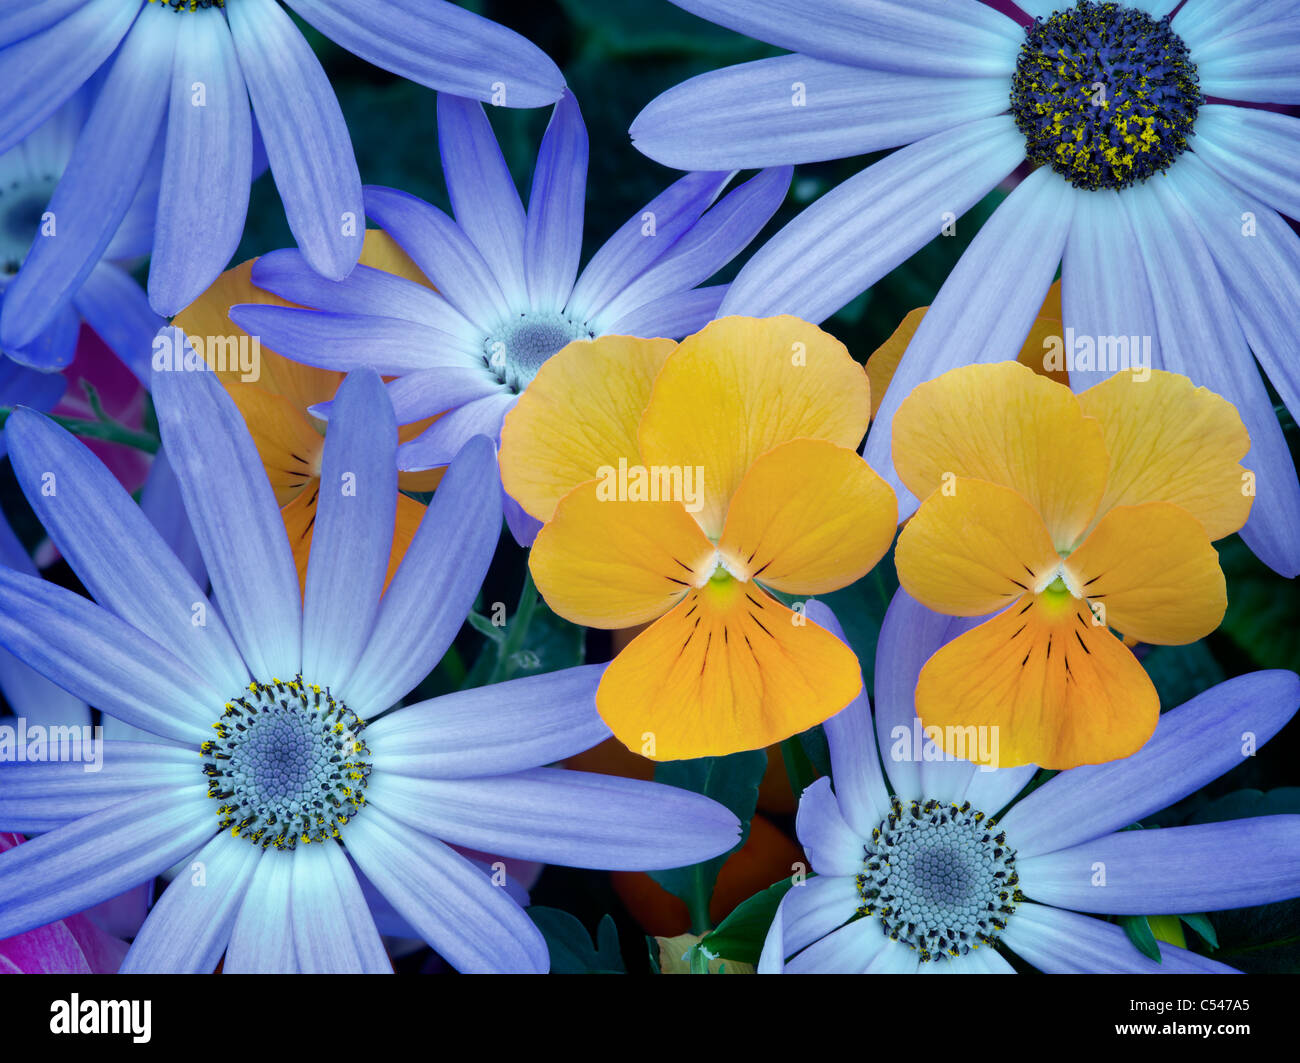 Blue Cineraria and orange violet flowers. - Stock Image